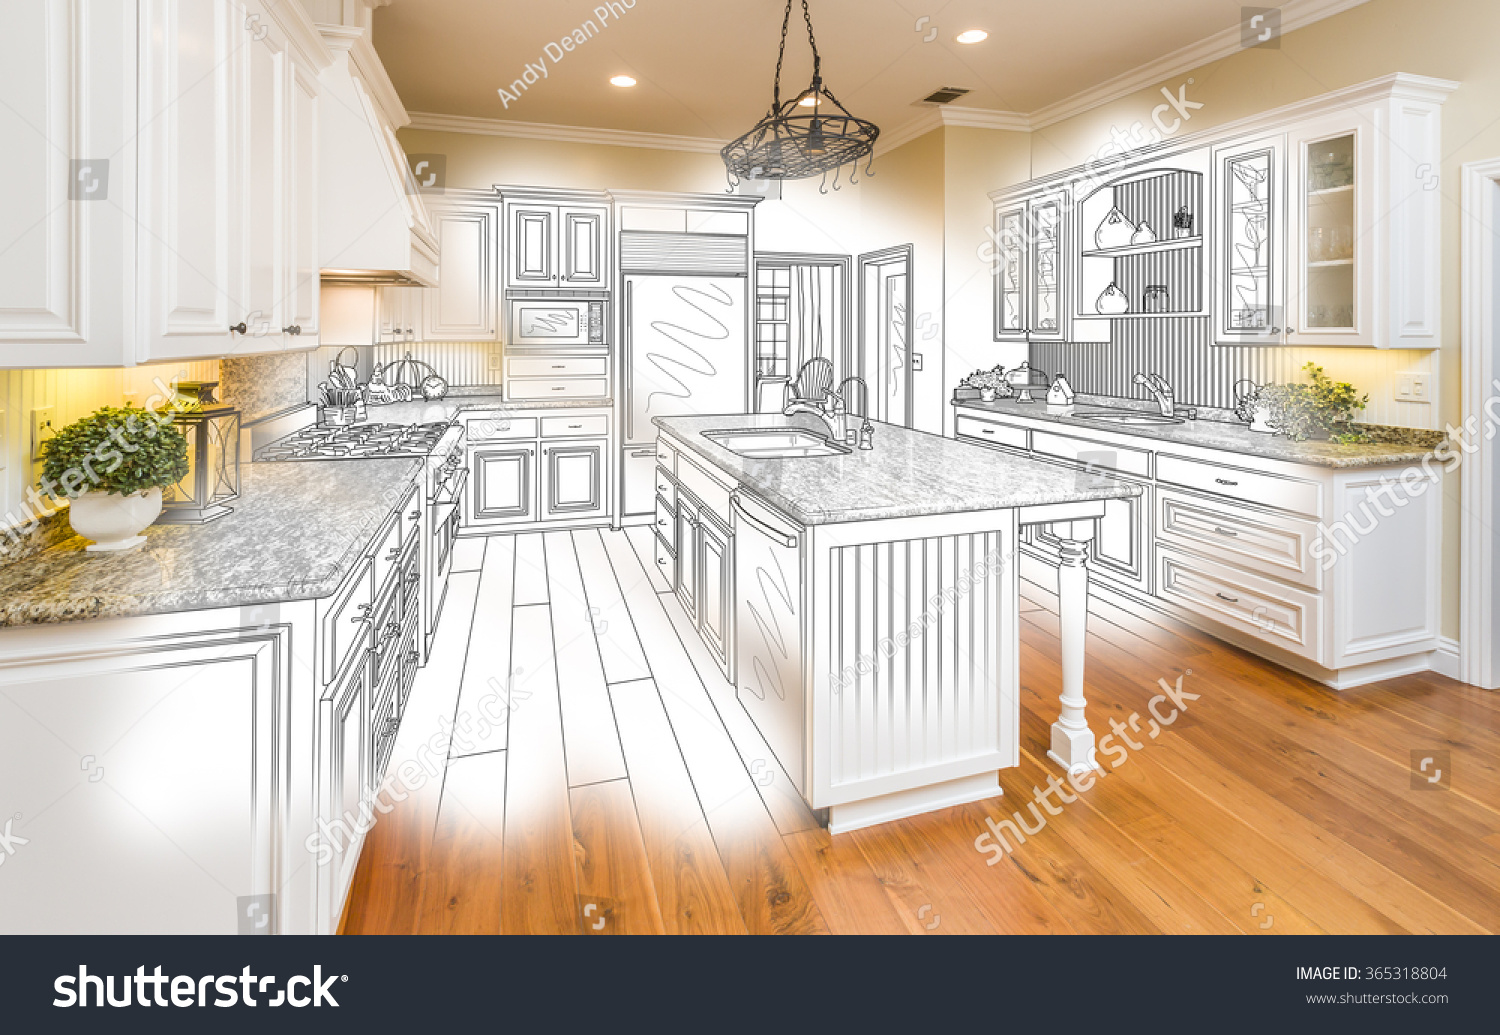 Kitchen Designer Seattle Inspiring Exemplary Kitchen Kitchen Kitchen Renovation Companies